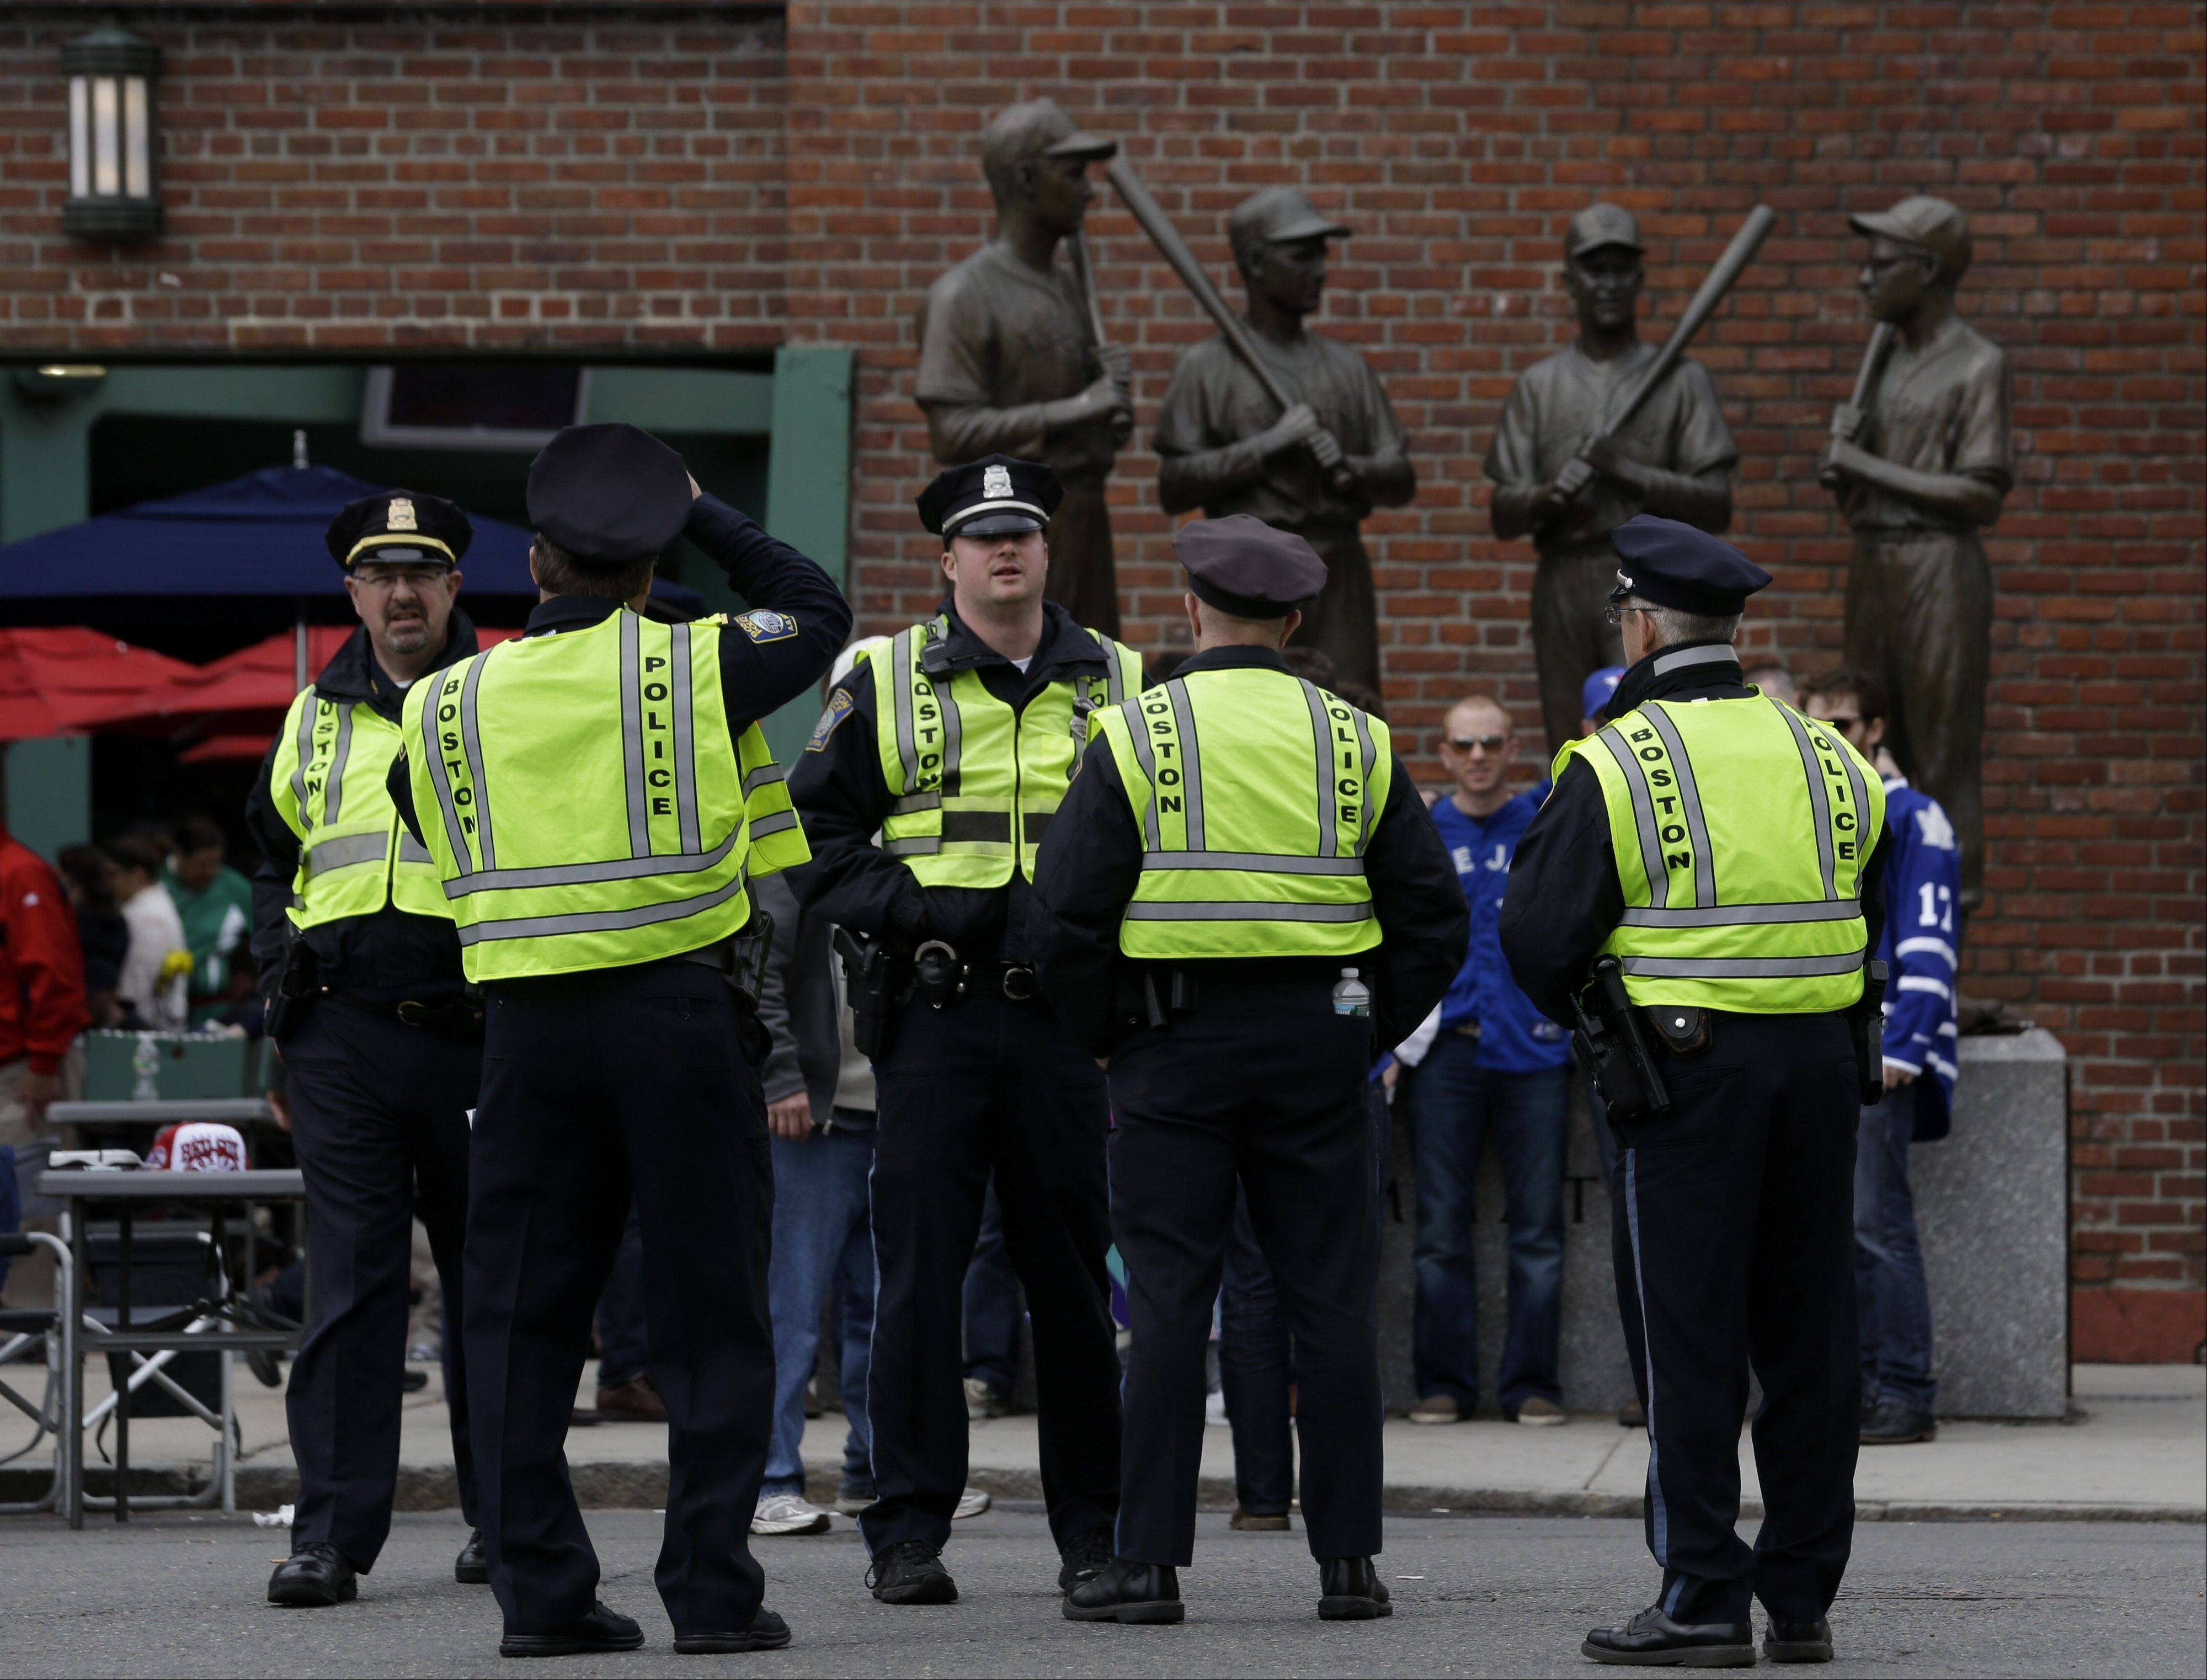 Boston bombings expose limits of post-9/11 security